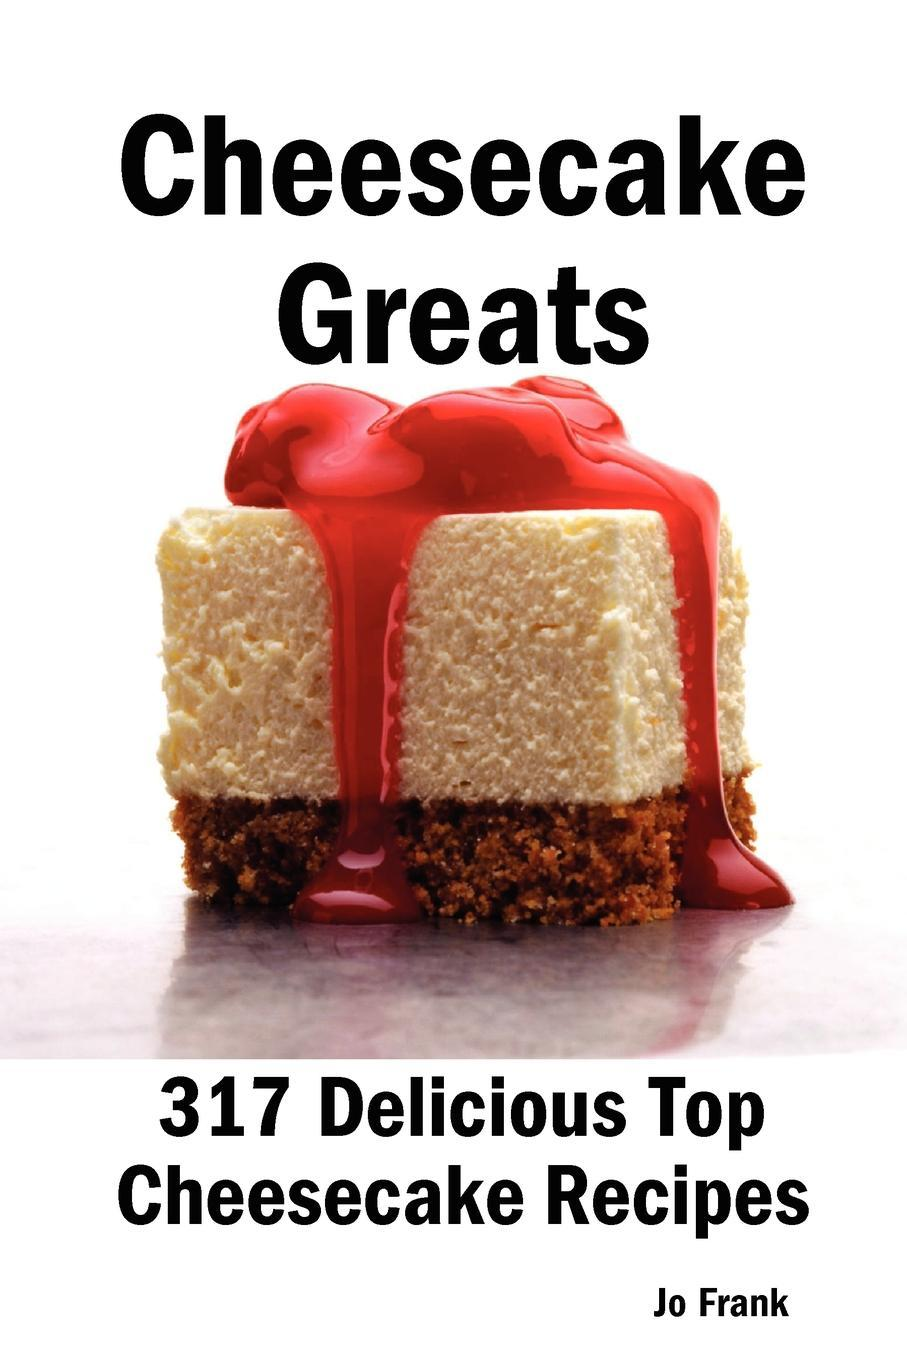 Cheesecake Greats: 317 Delicious Top Cheesecake Recipes - From Amaretto and Ghirardelli Chocolate Chip Cheesecake to Yoghurt Cheesecake